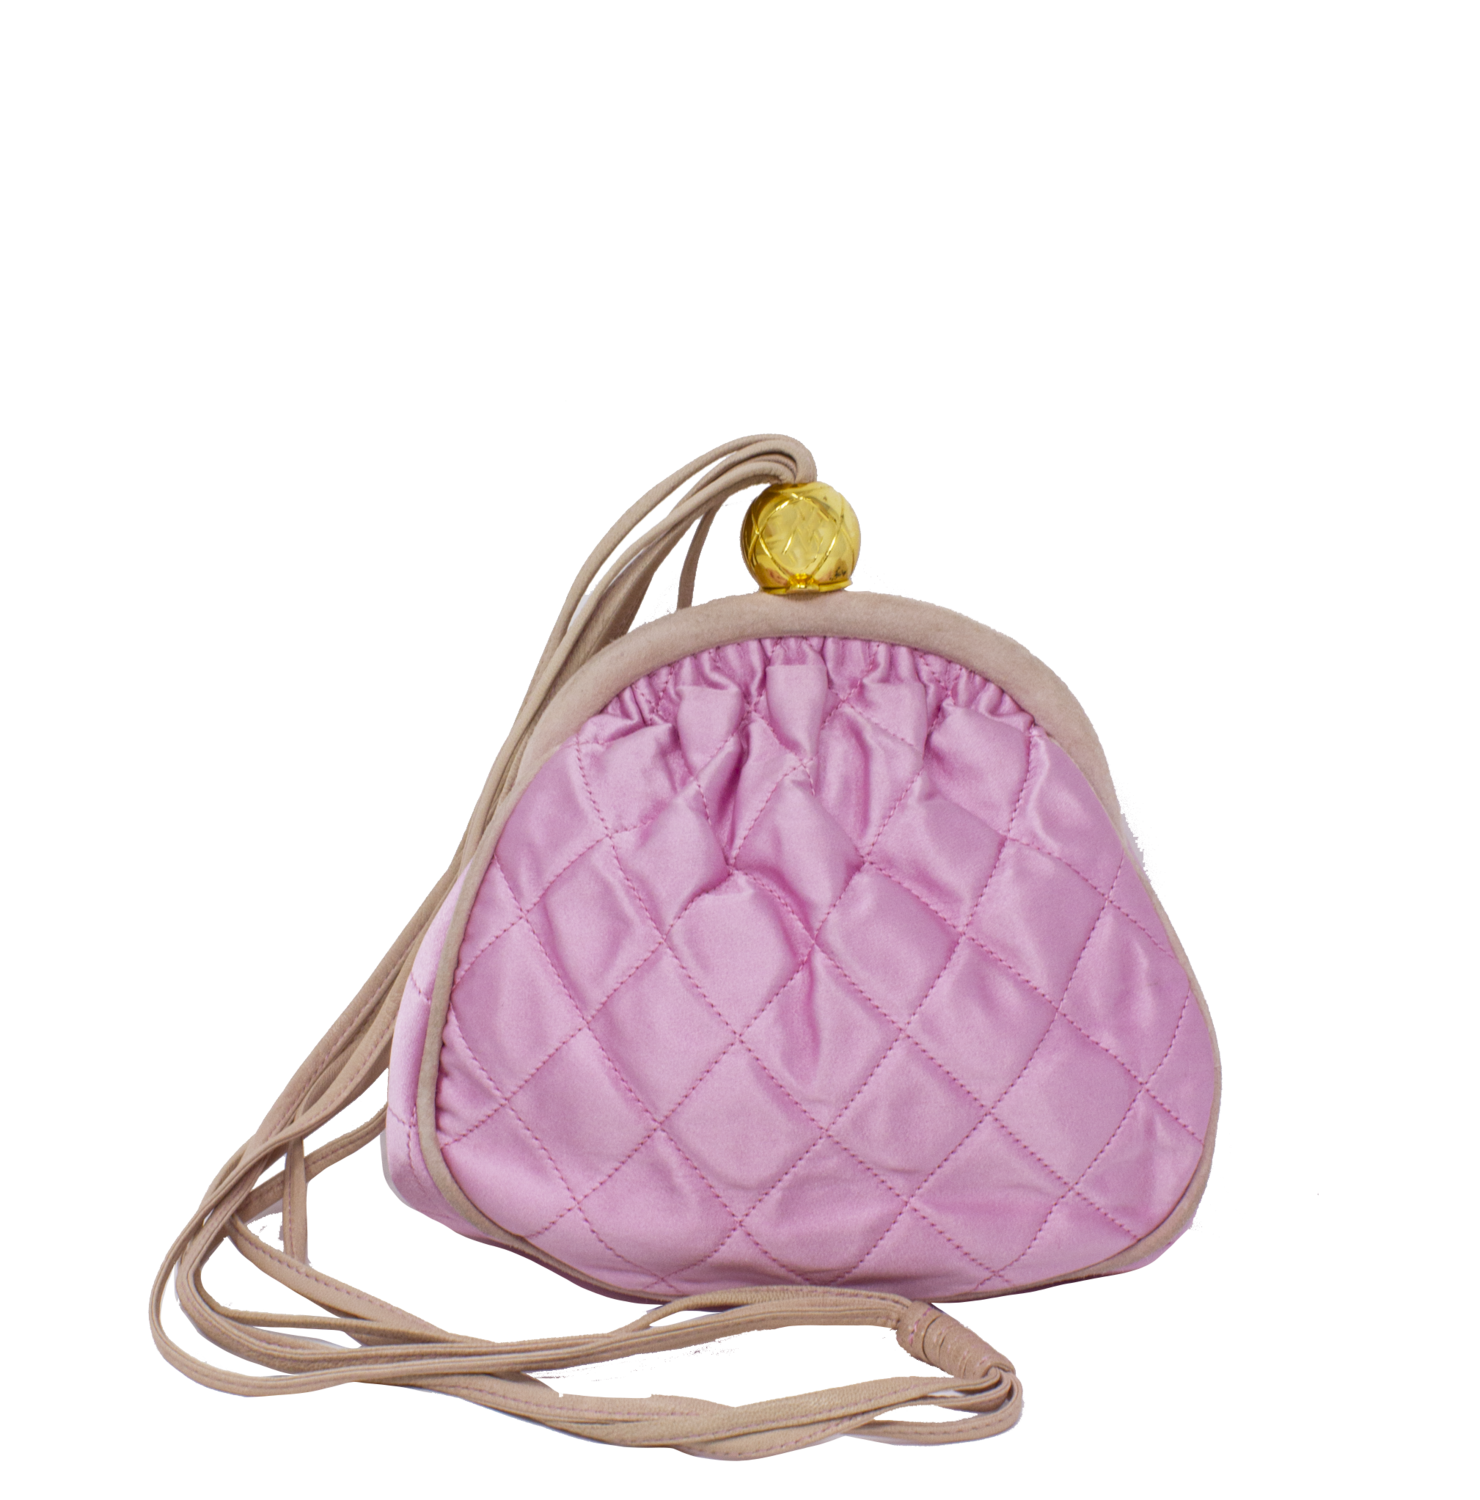 Chanel Pink Satin Quilted Kiss-Lock Bag